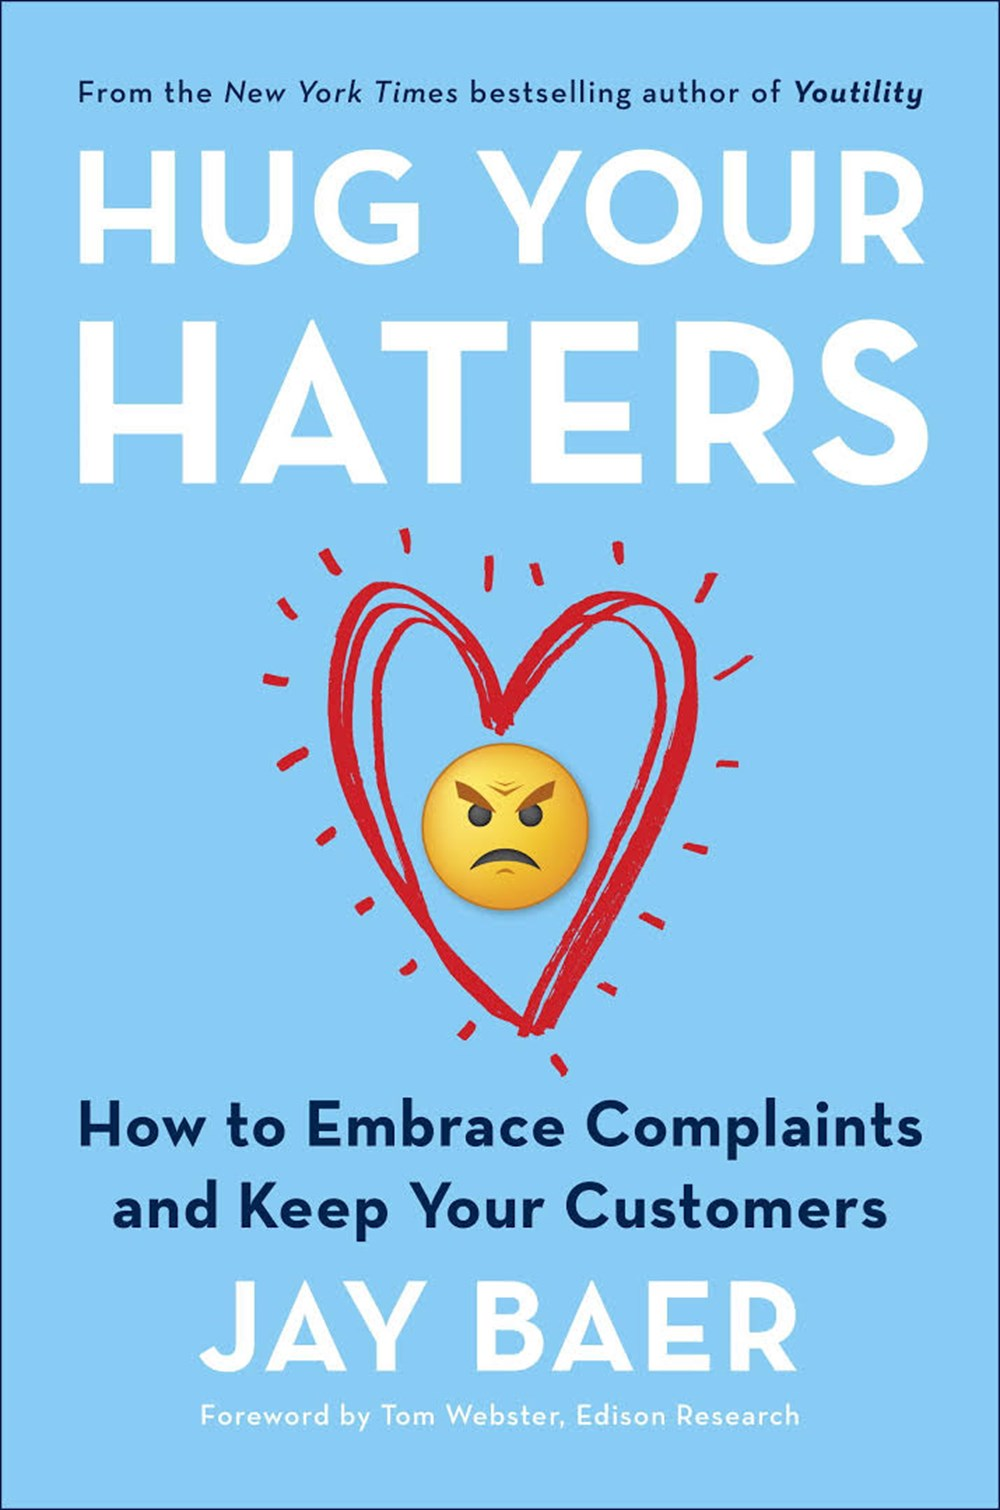 Hug Your Haters How to Embrace Complaints and Keep Your Customers